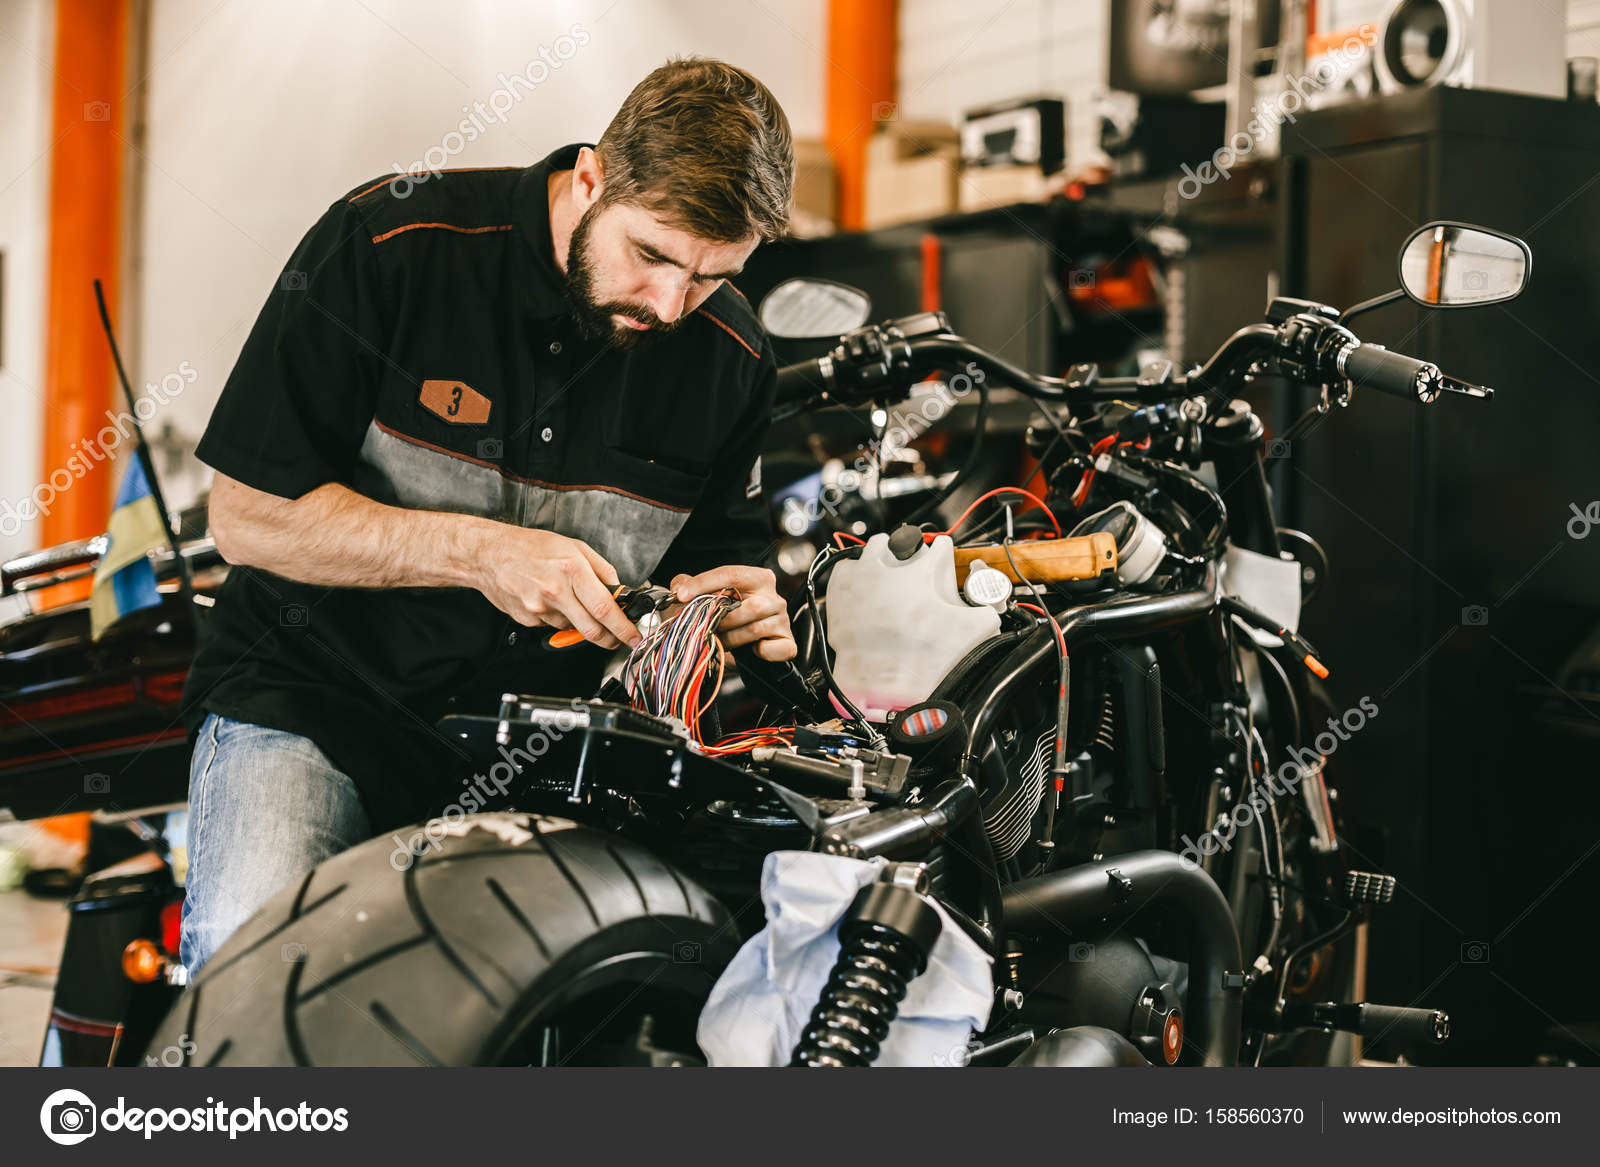 professional motorcycle mechanic works with electronics cuts wires stock photo